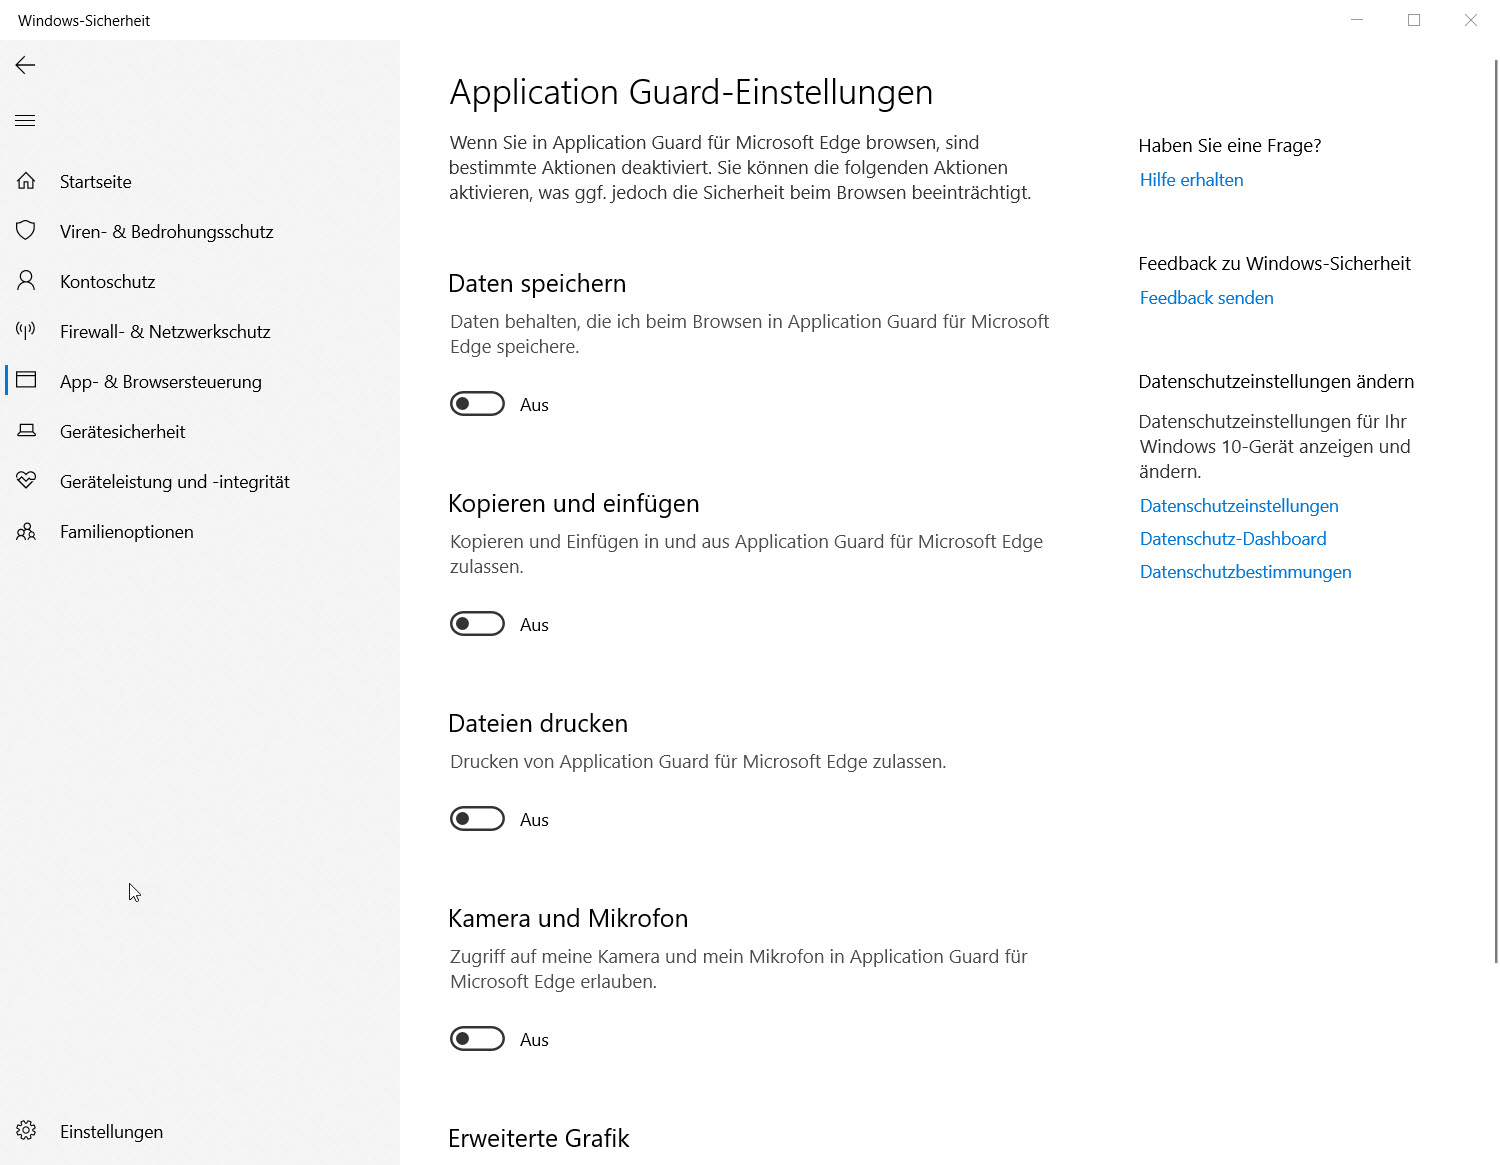 Application Guard Einstellungen